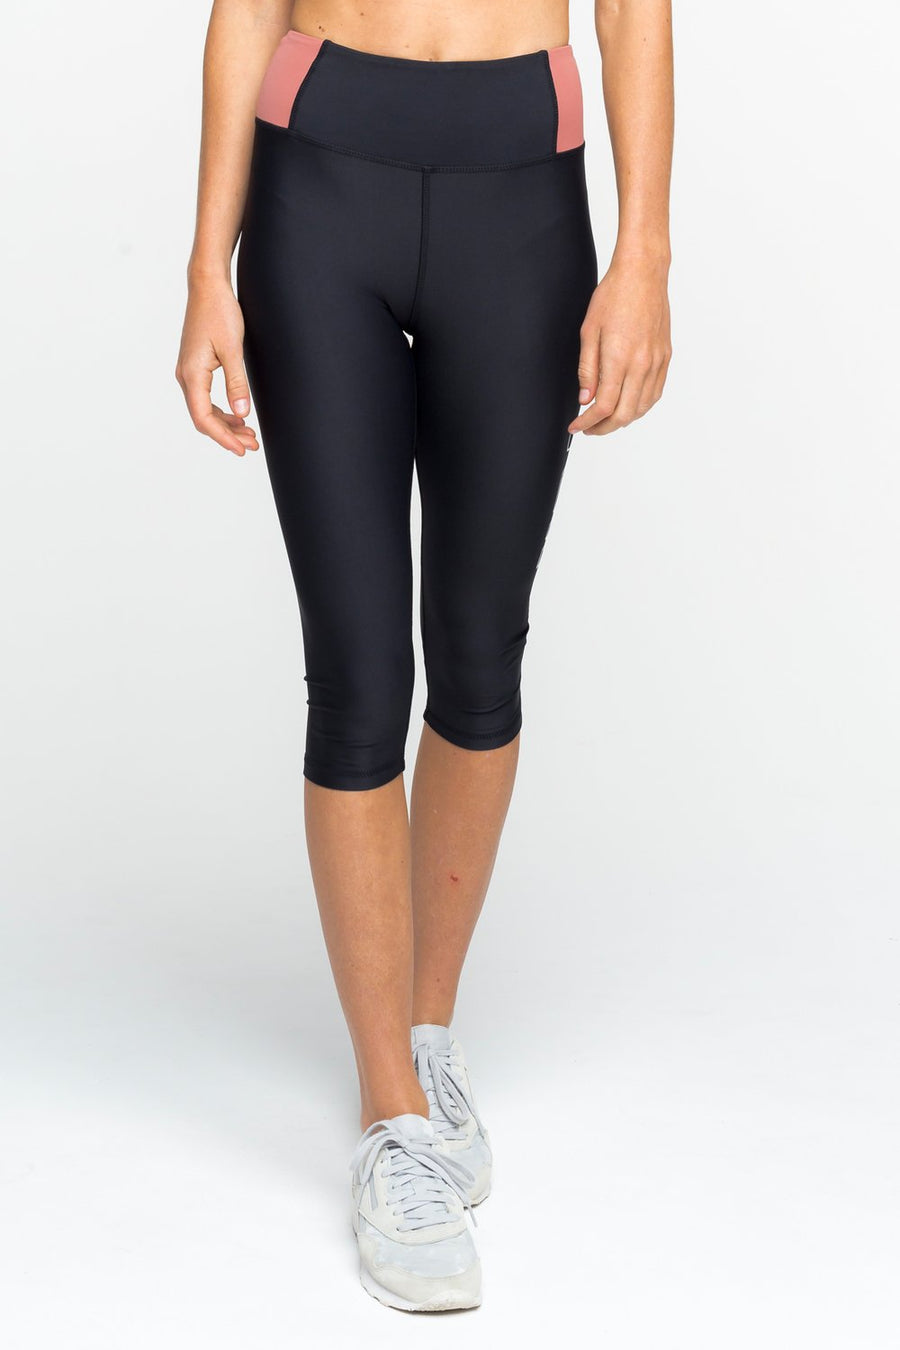 The Cape 3/4 Legging